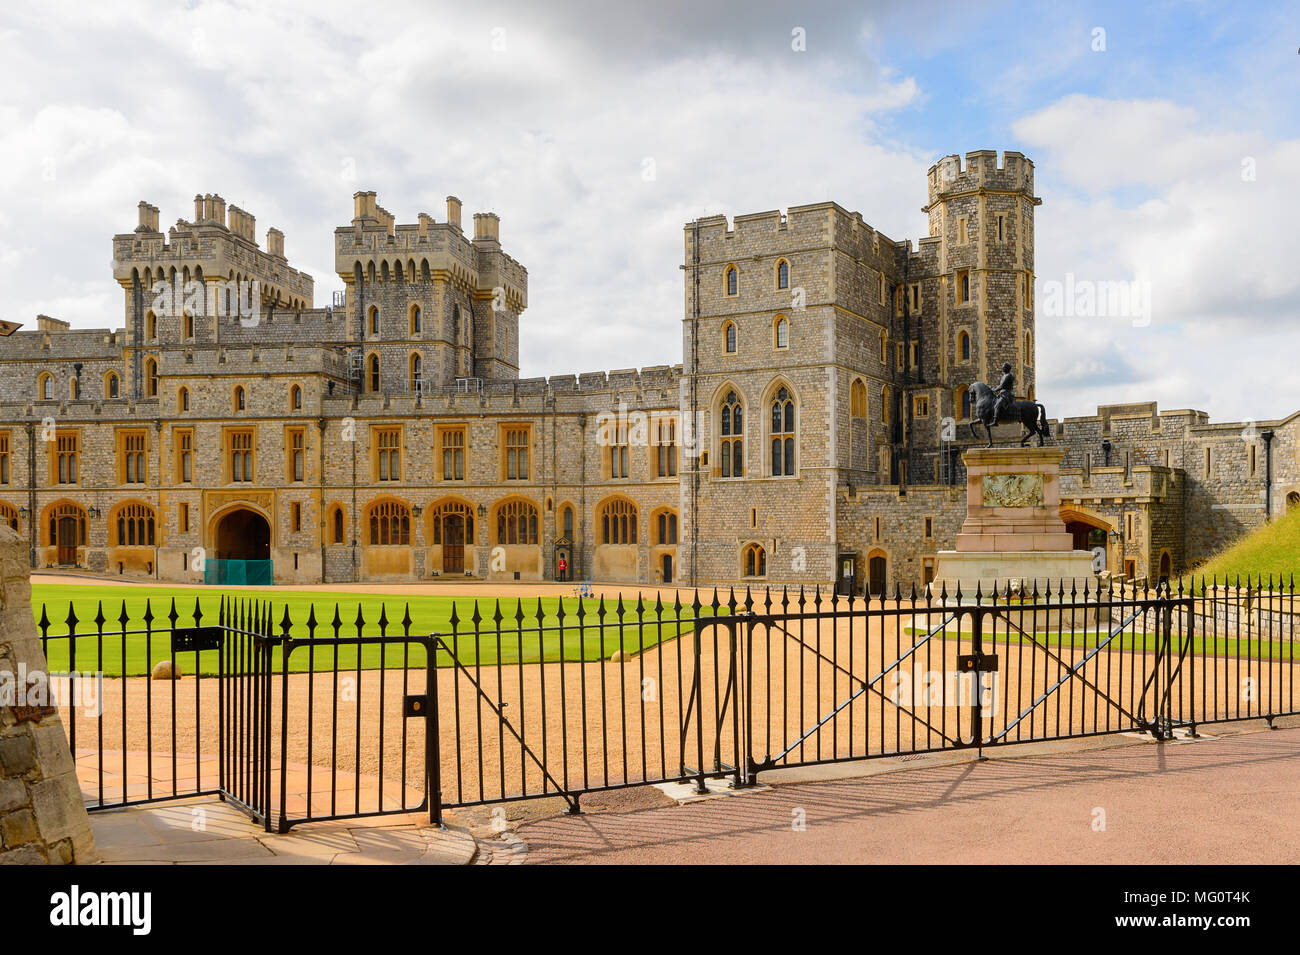 South Wing of the Upper Ward, Windsor Castle, Berkshire, England. Official Residence of Her Majesty The Queen - Stock Image